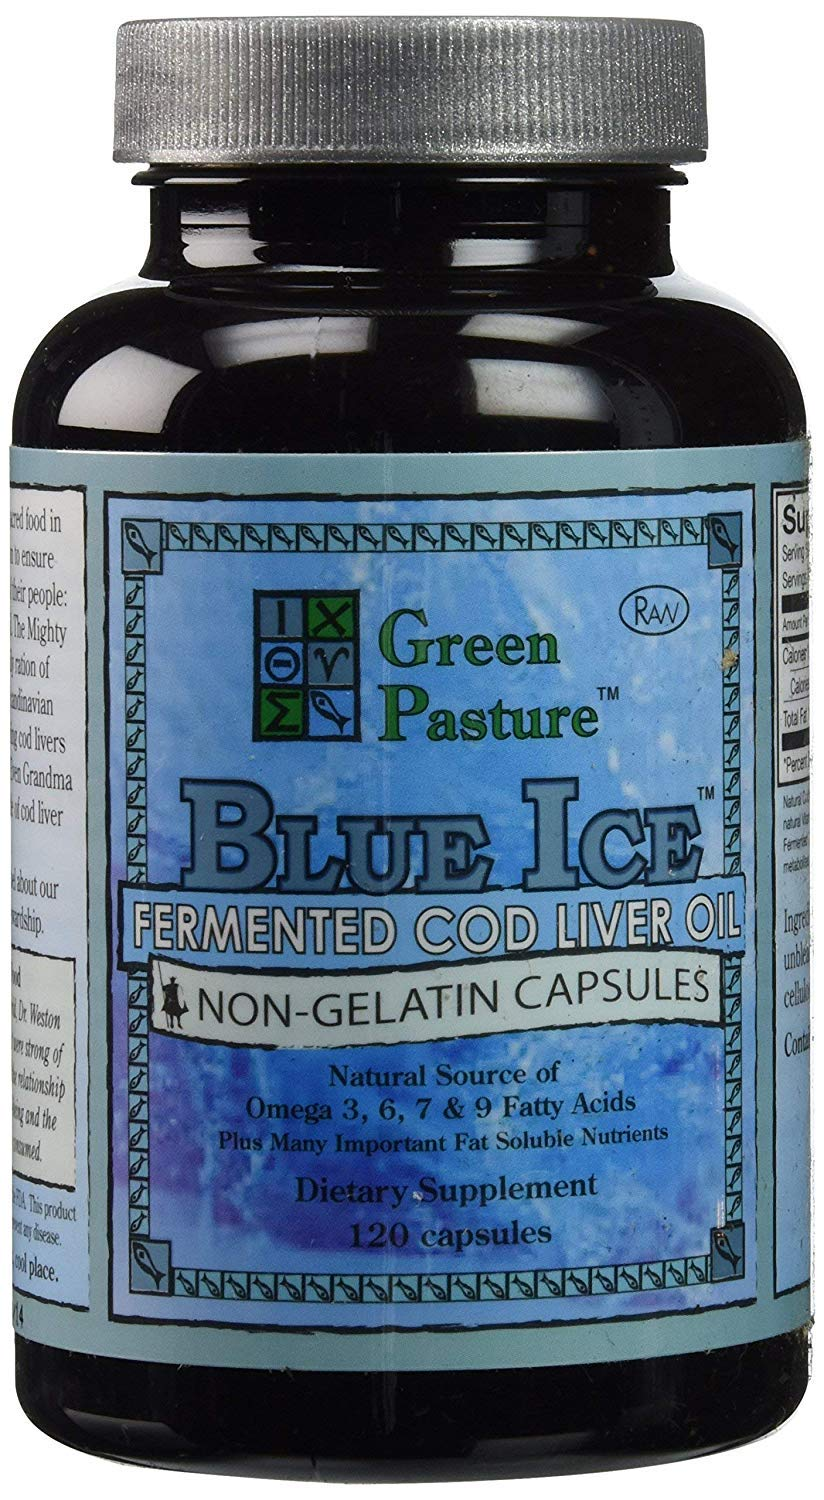 BLUE ICE Fermented Cod Liver Oil -Non-Gelatin Capsules (2 Pack)